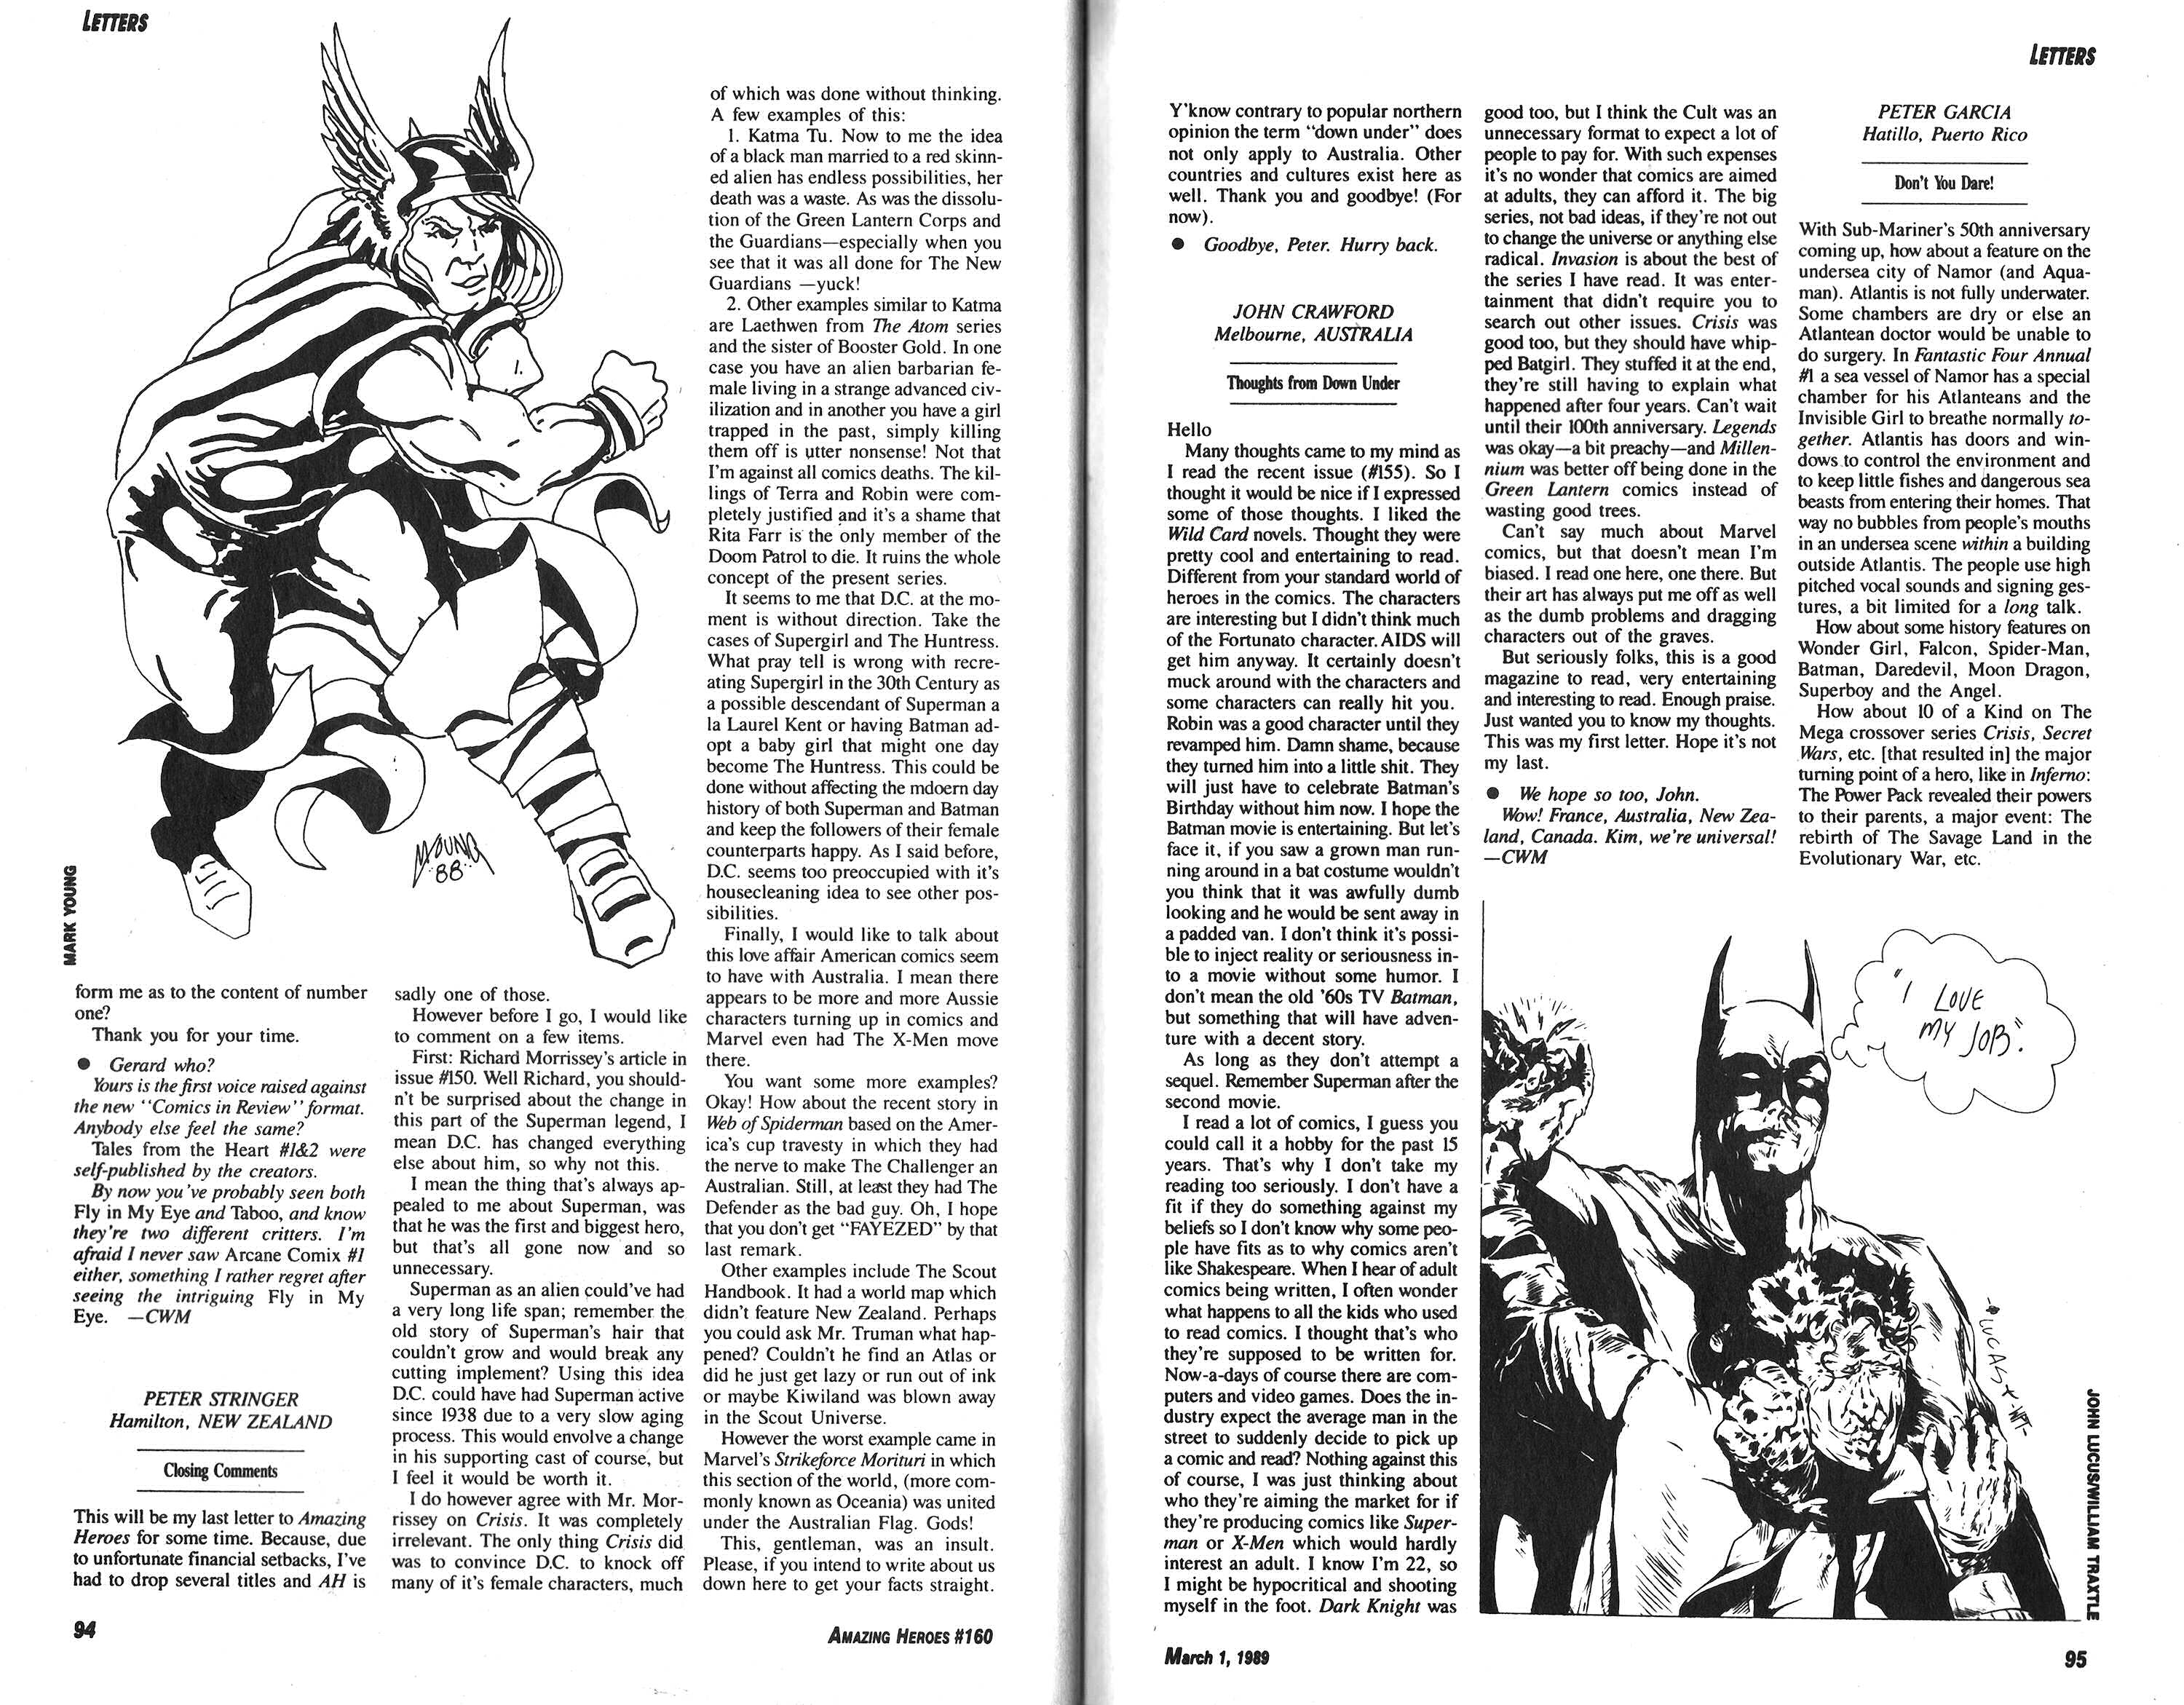 Read online Amazing Heroes comic -  Issue #160 - 48